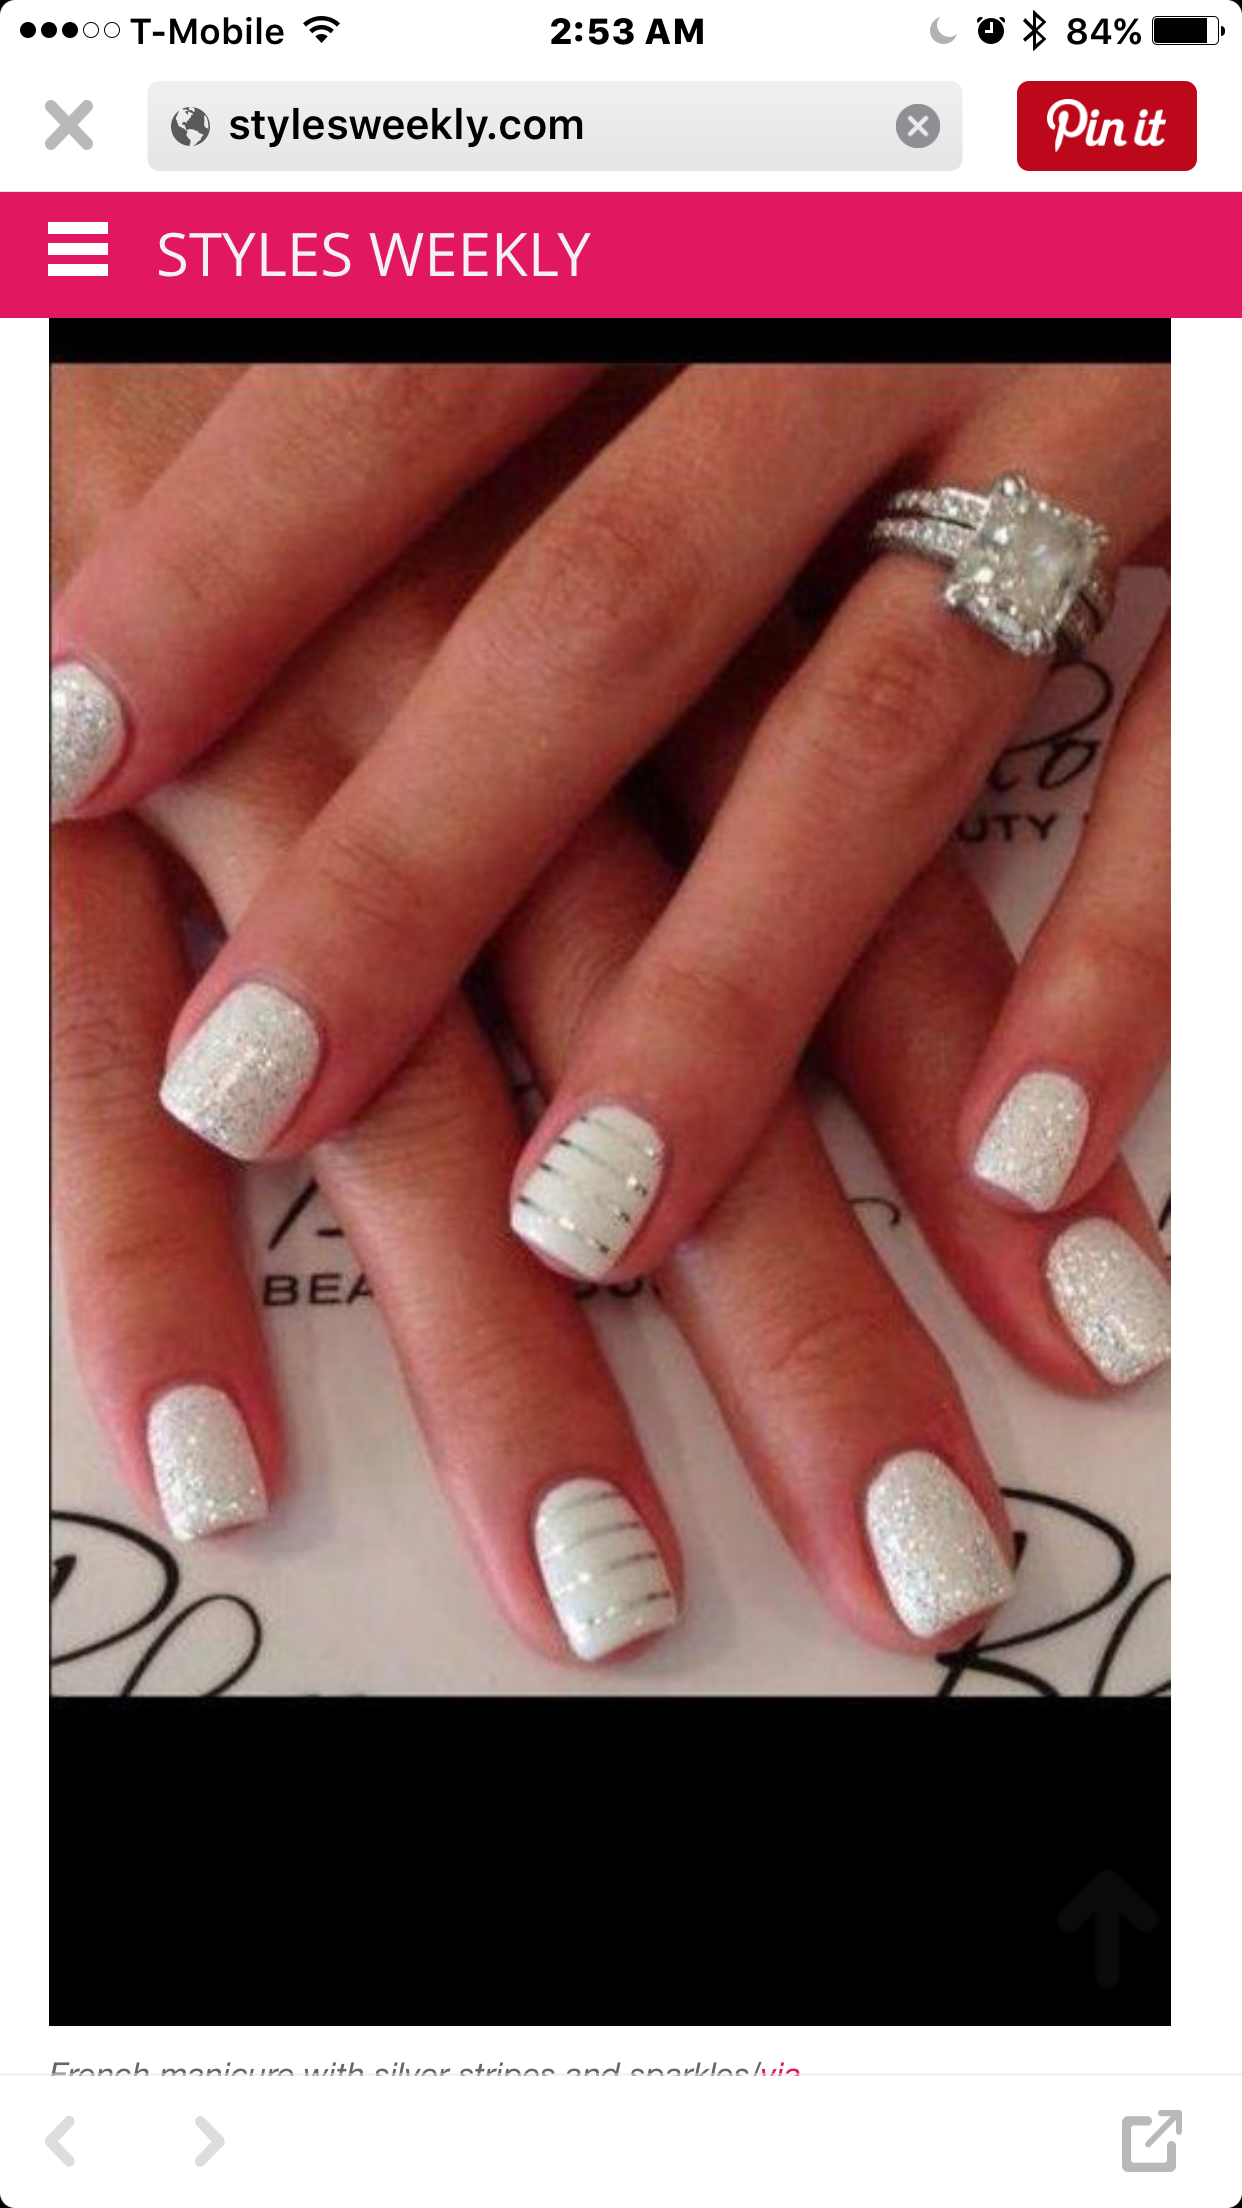 Pin by Sheryll Lynette on Fashion! Nails! | Pinterest